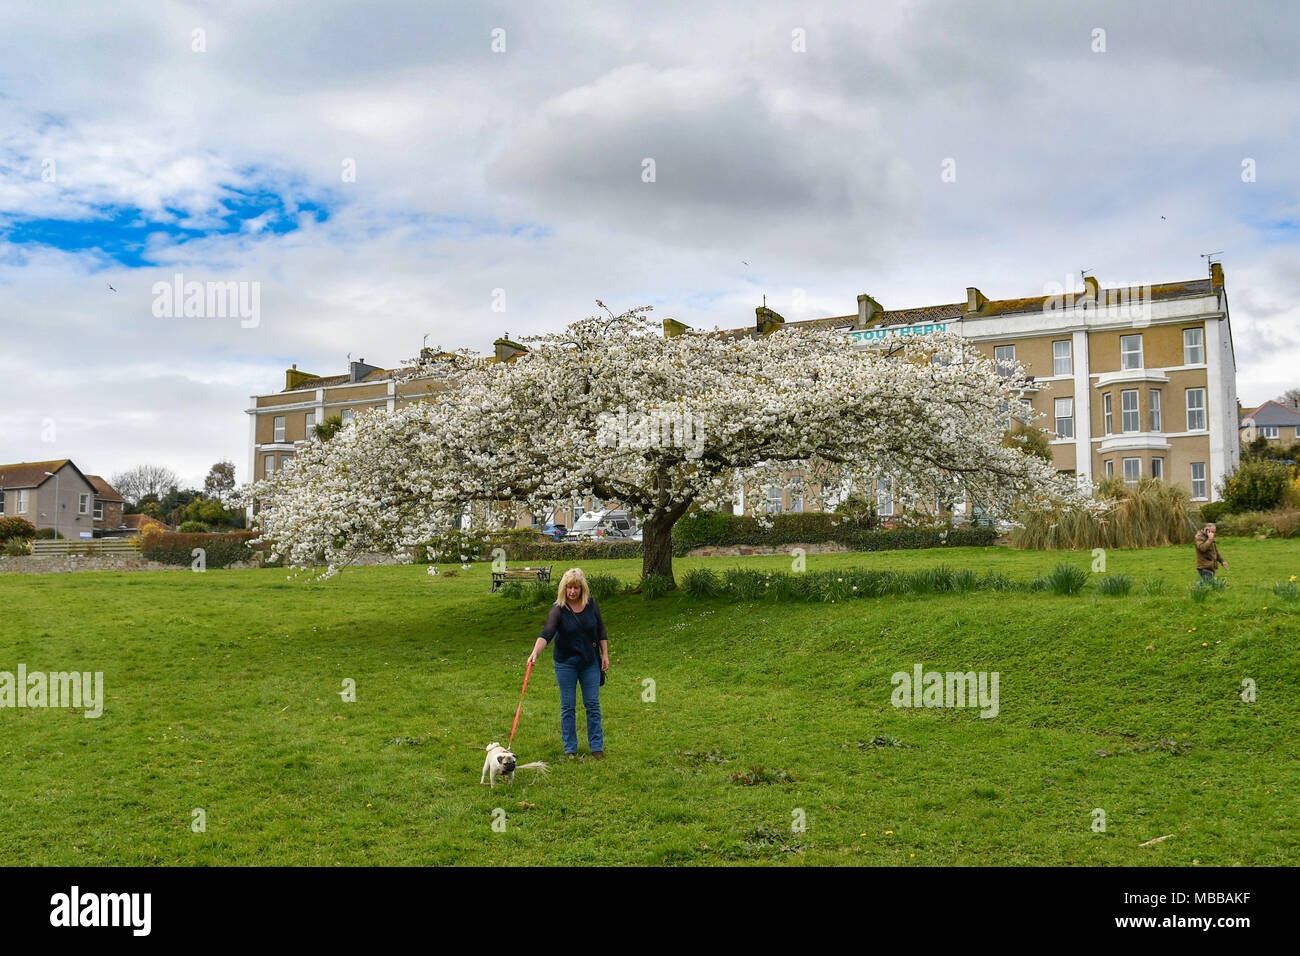 Pug dog being walked infront of a large blossom tree - Stock Image